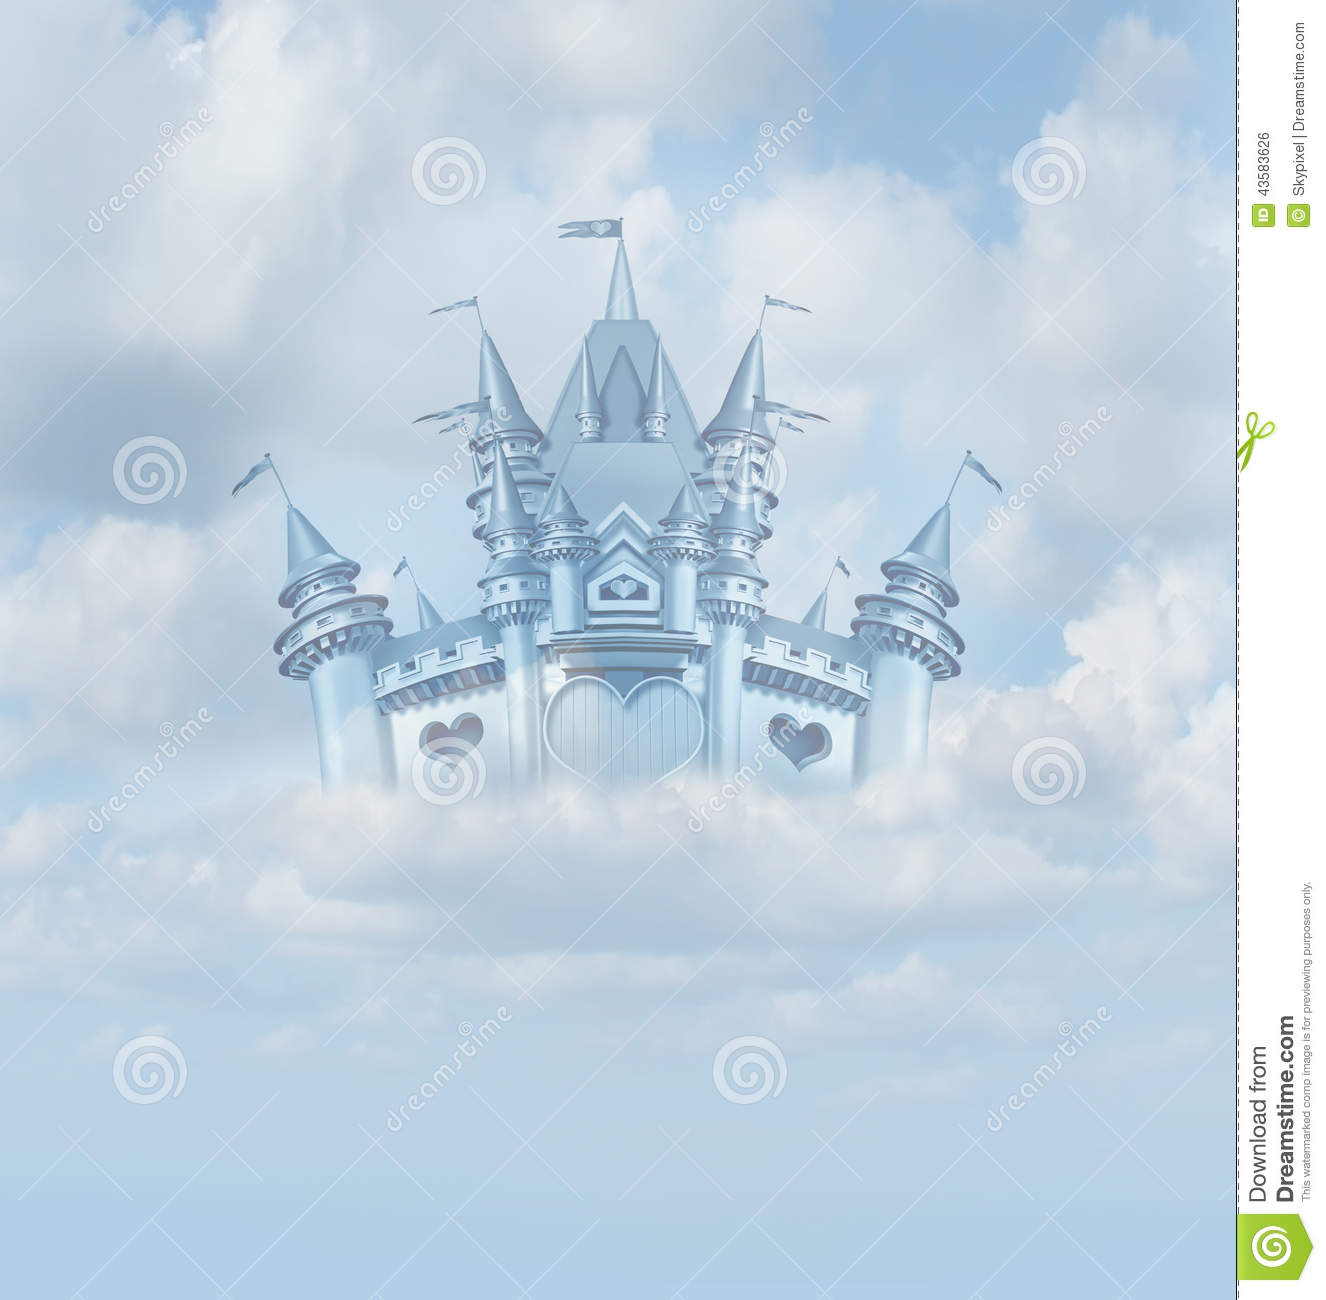 Magical Fairytale Castle Stock Illustration Image 43583626